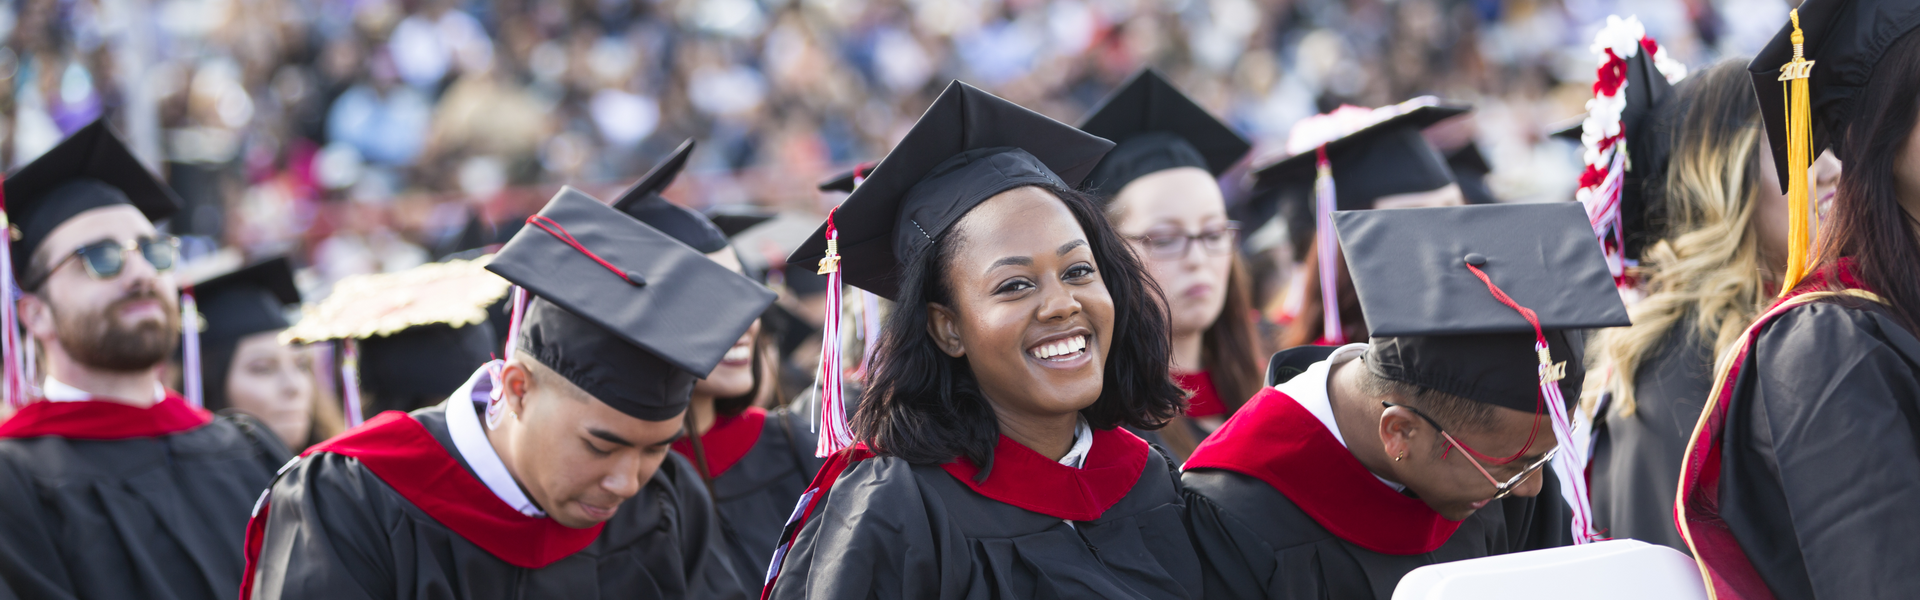 Students in their cap and gowns at a commencement ceremony.